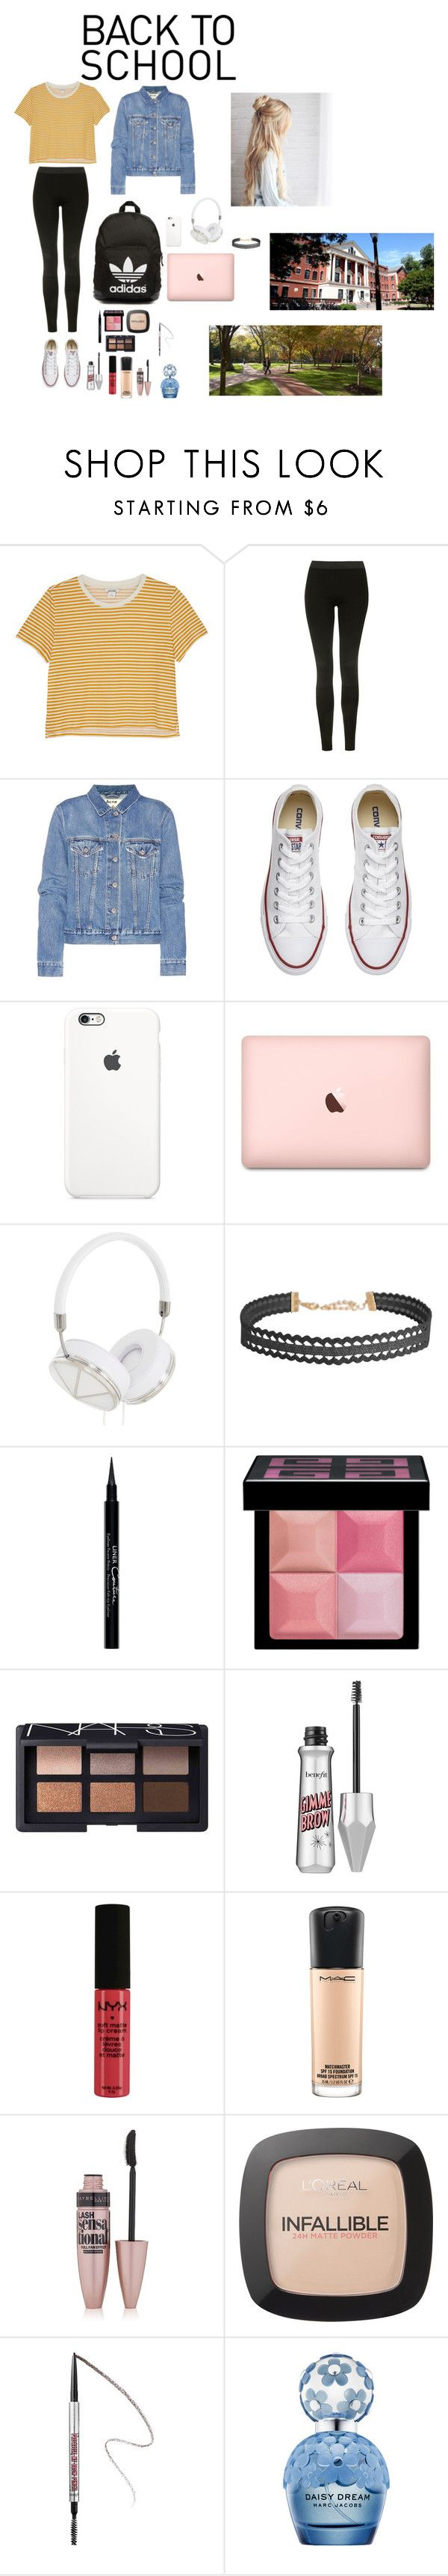 """""""Back to School:College"""" by peytonolivia27 on Polyvore featuring Monki, Topshop, Acne Studios, Converse, adidas Originals, Frends, Humble Chic, Givenchy, NARS Cosmetics and Benefit"""